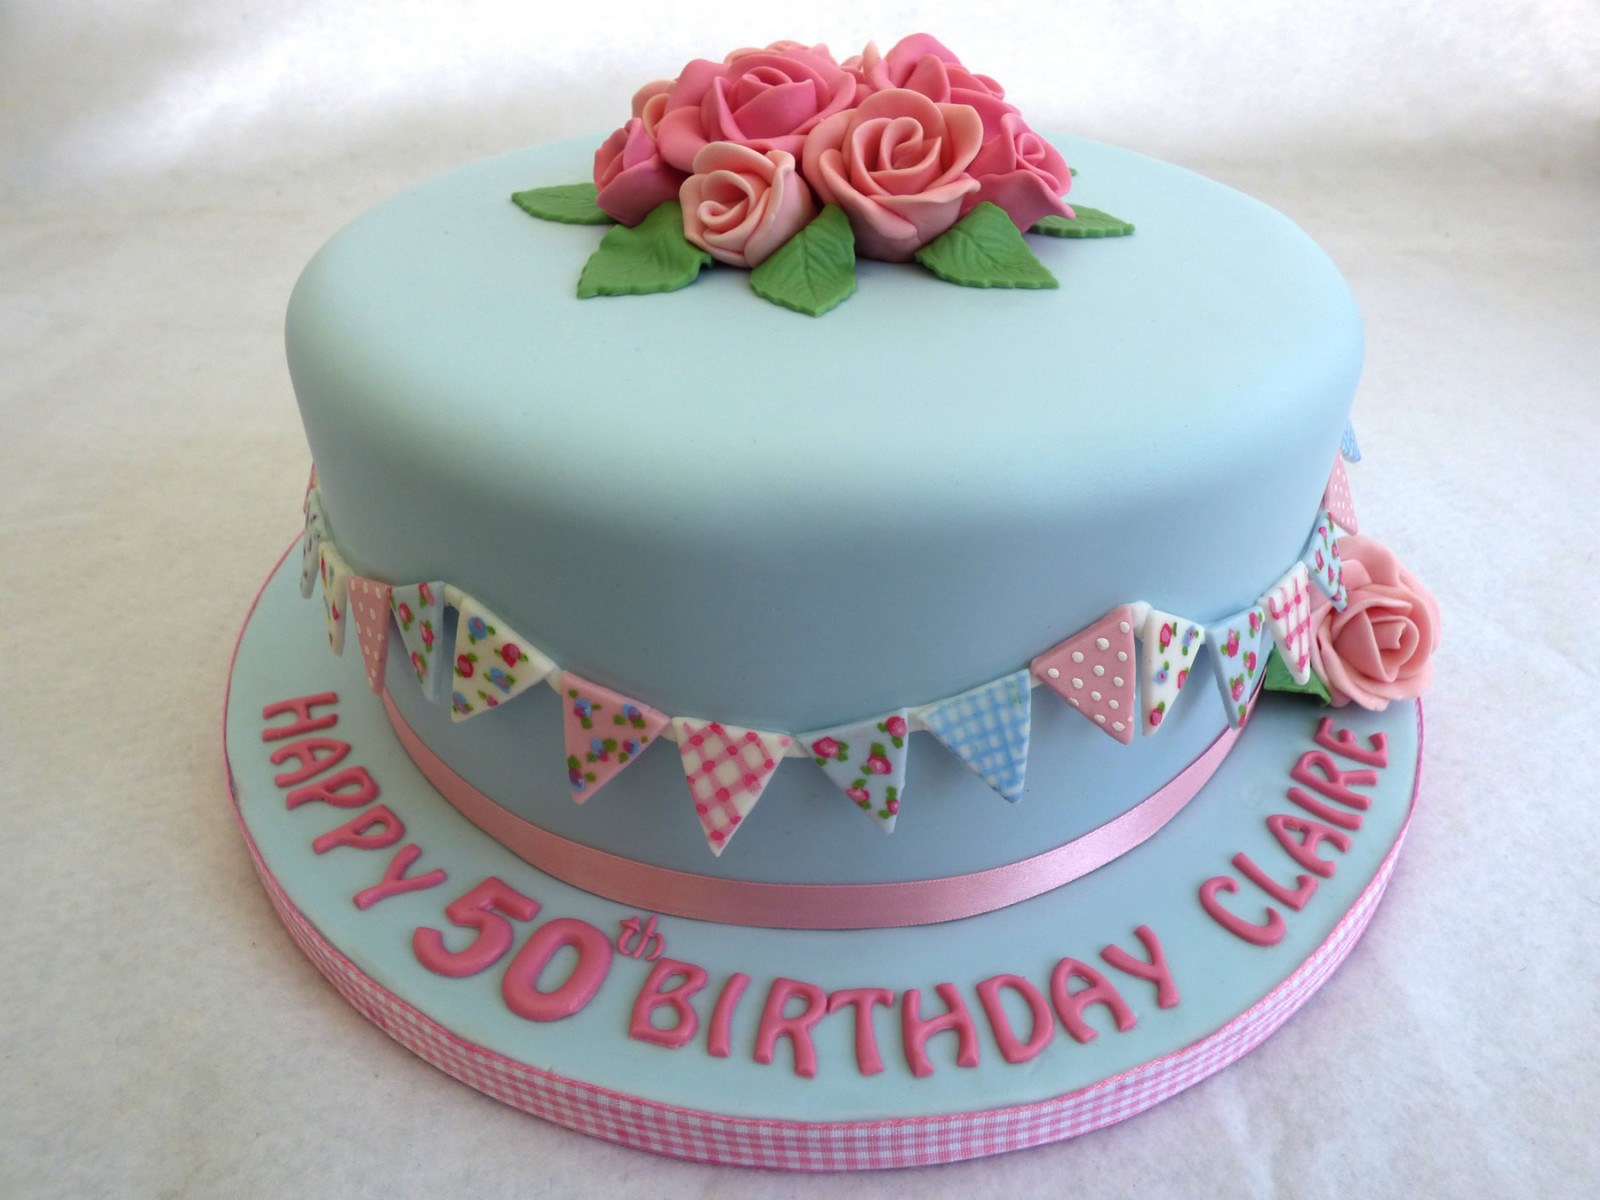 Pretty Vintage Style Birthday Cake